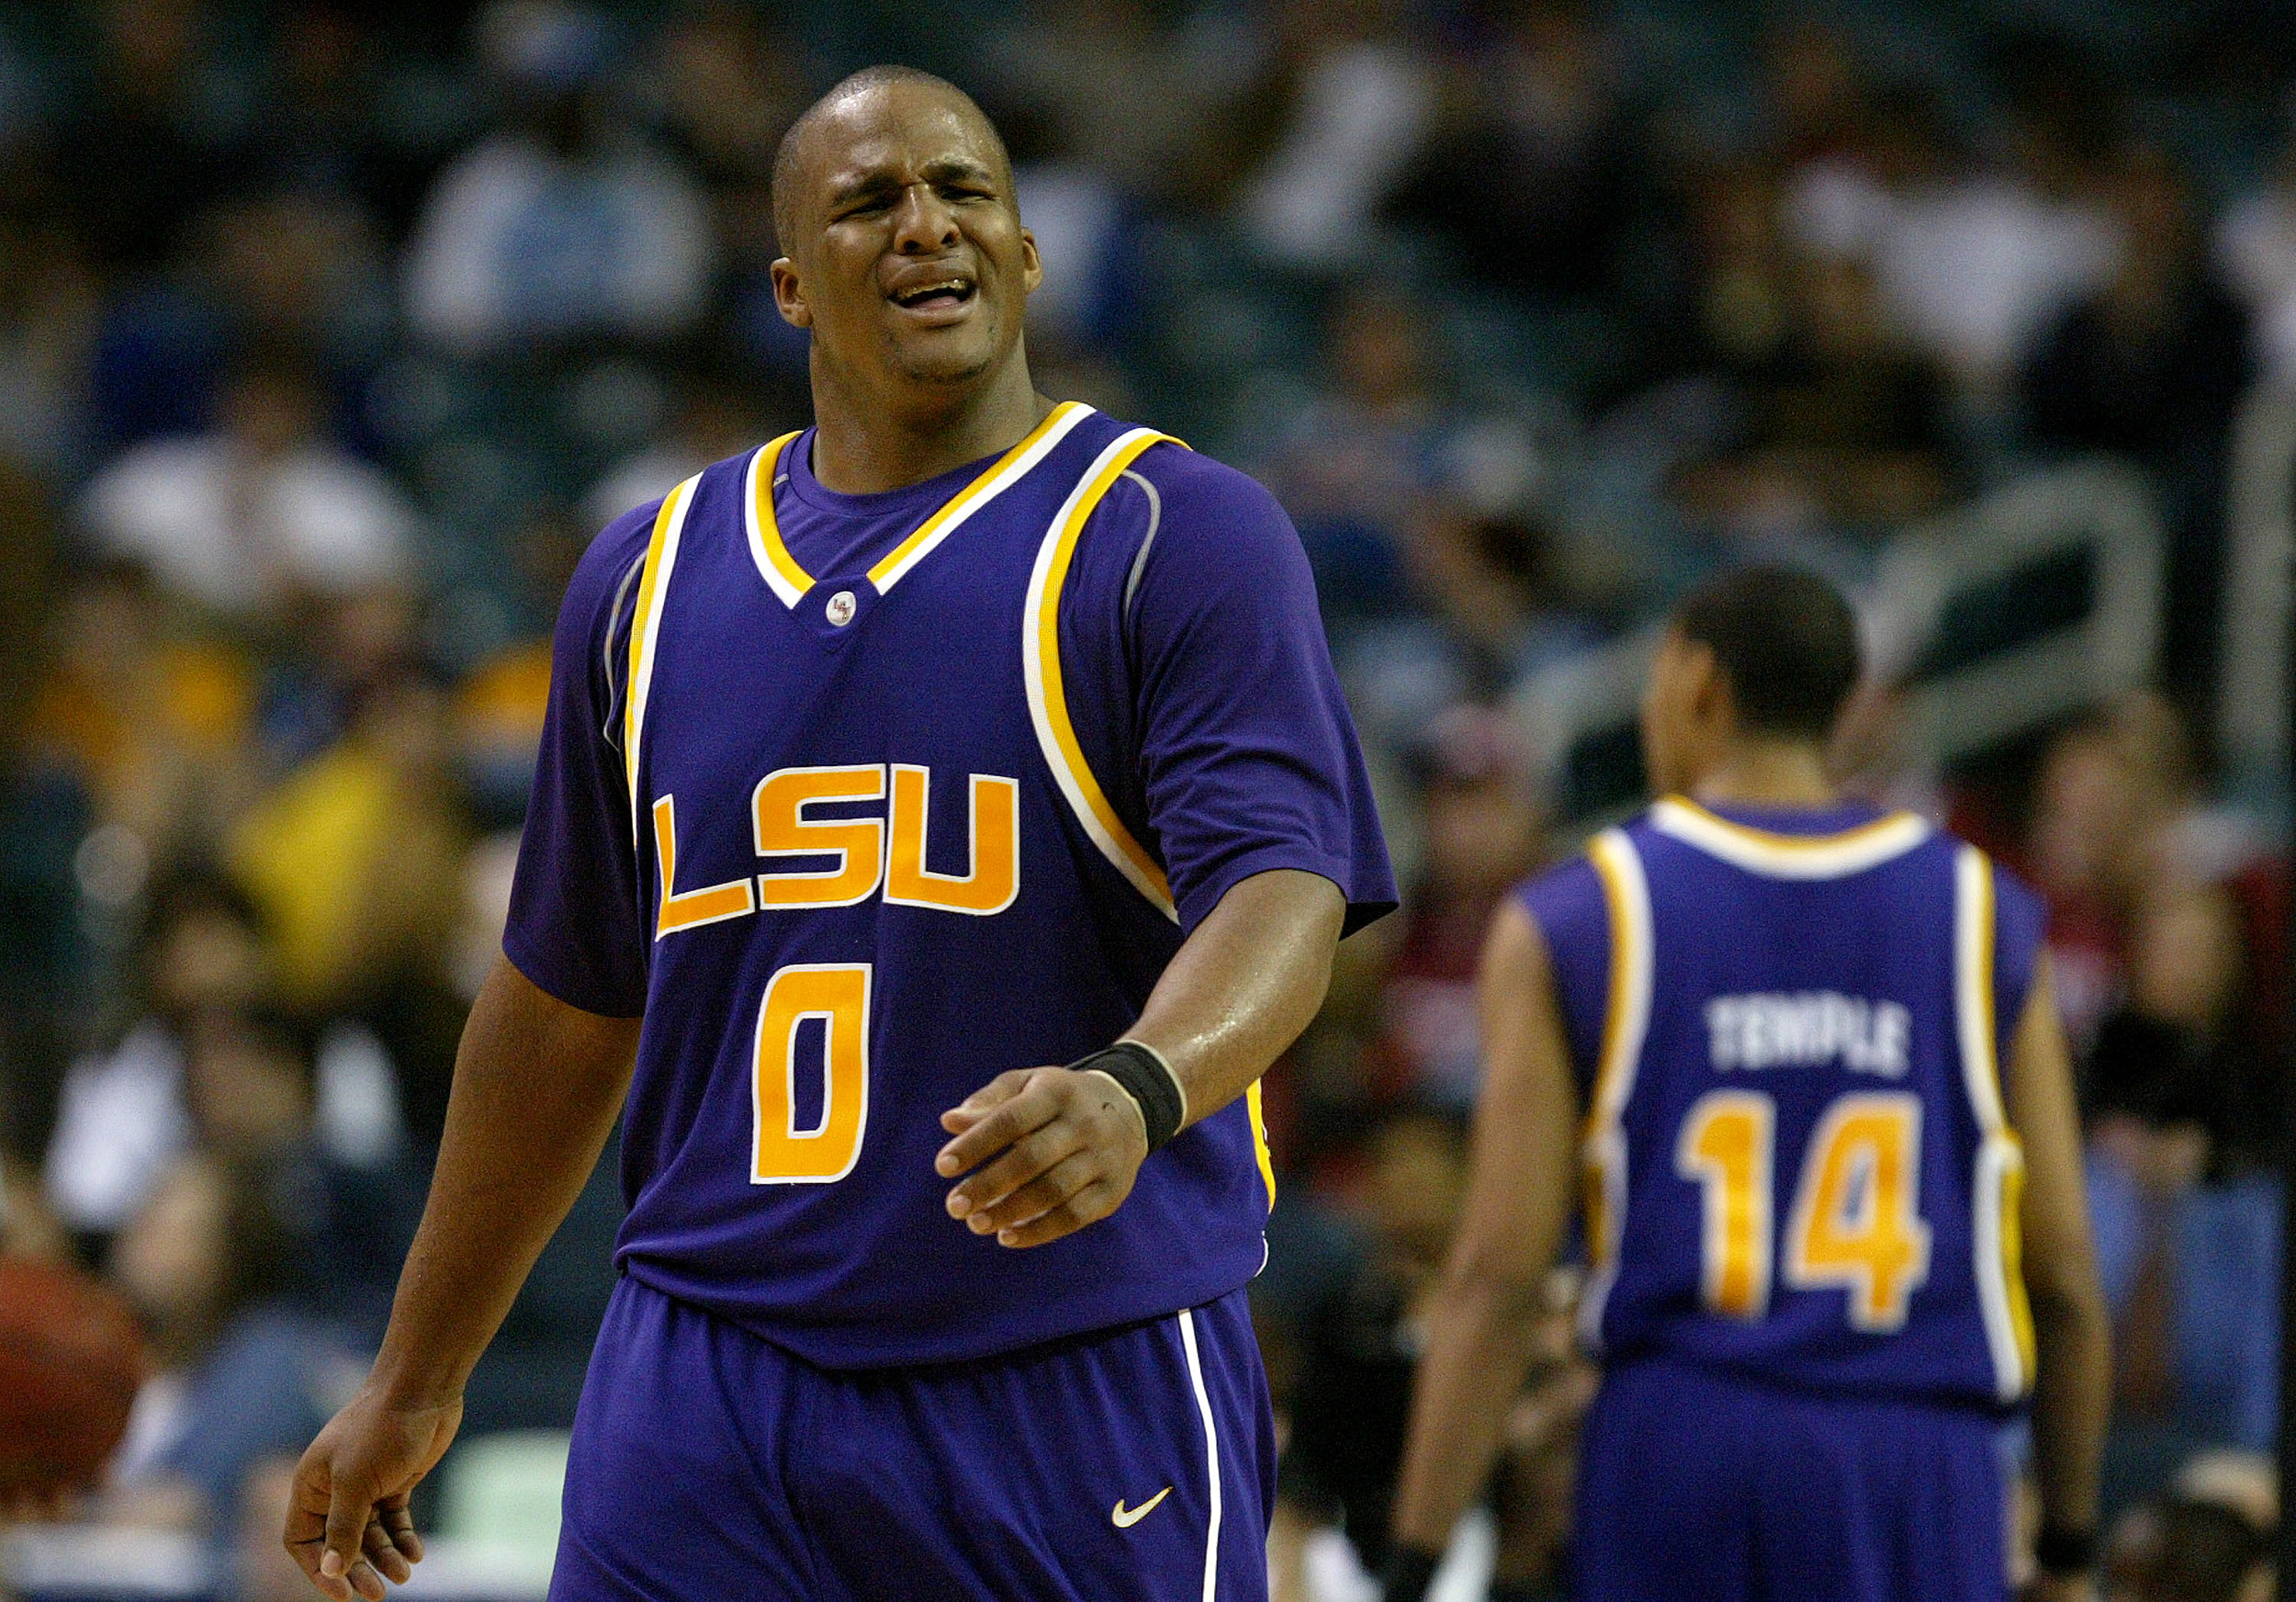 Former Lsu Star Glen Davis Signs To Play In Canada